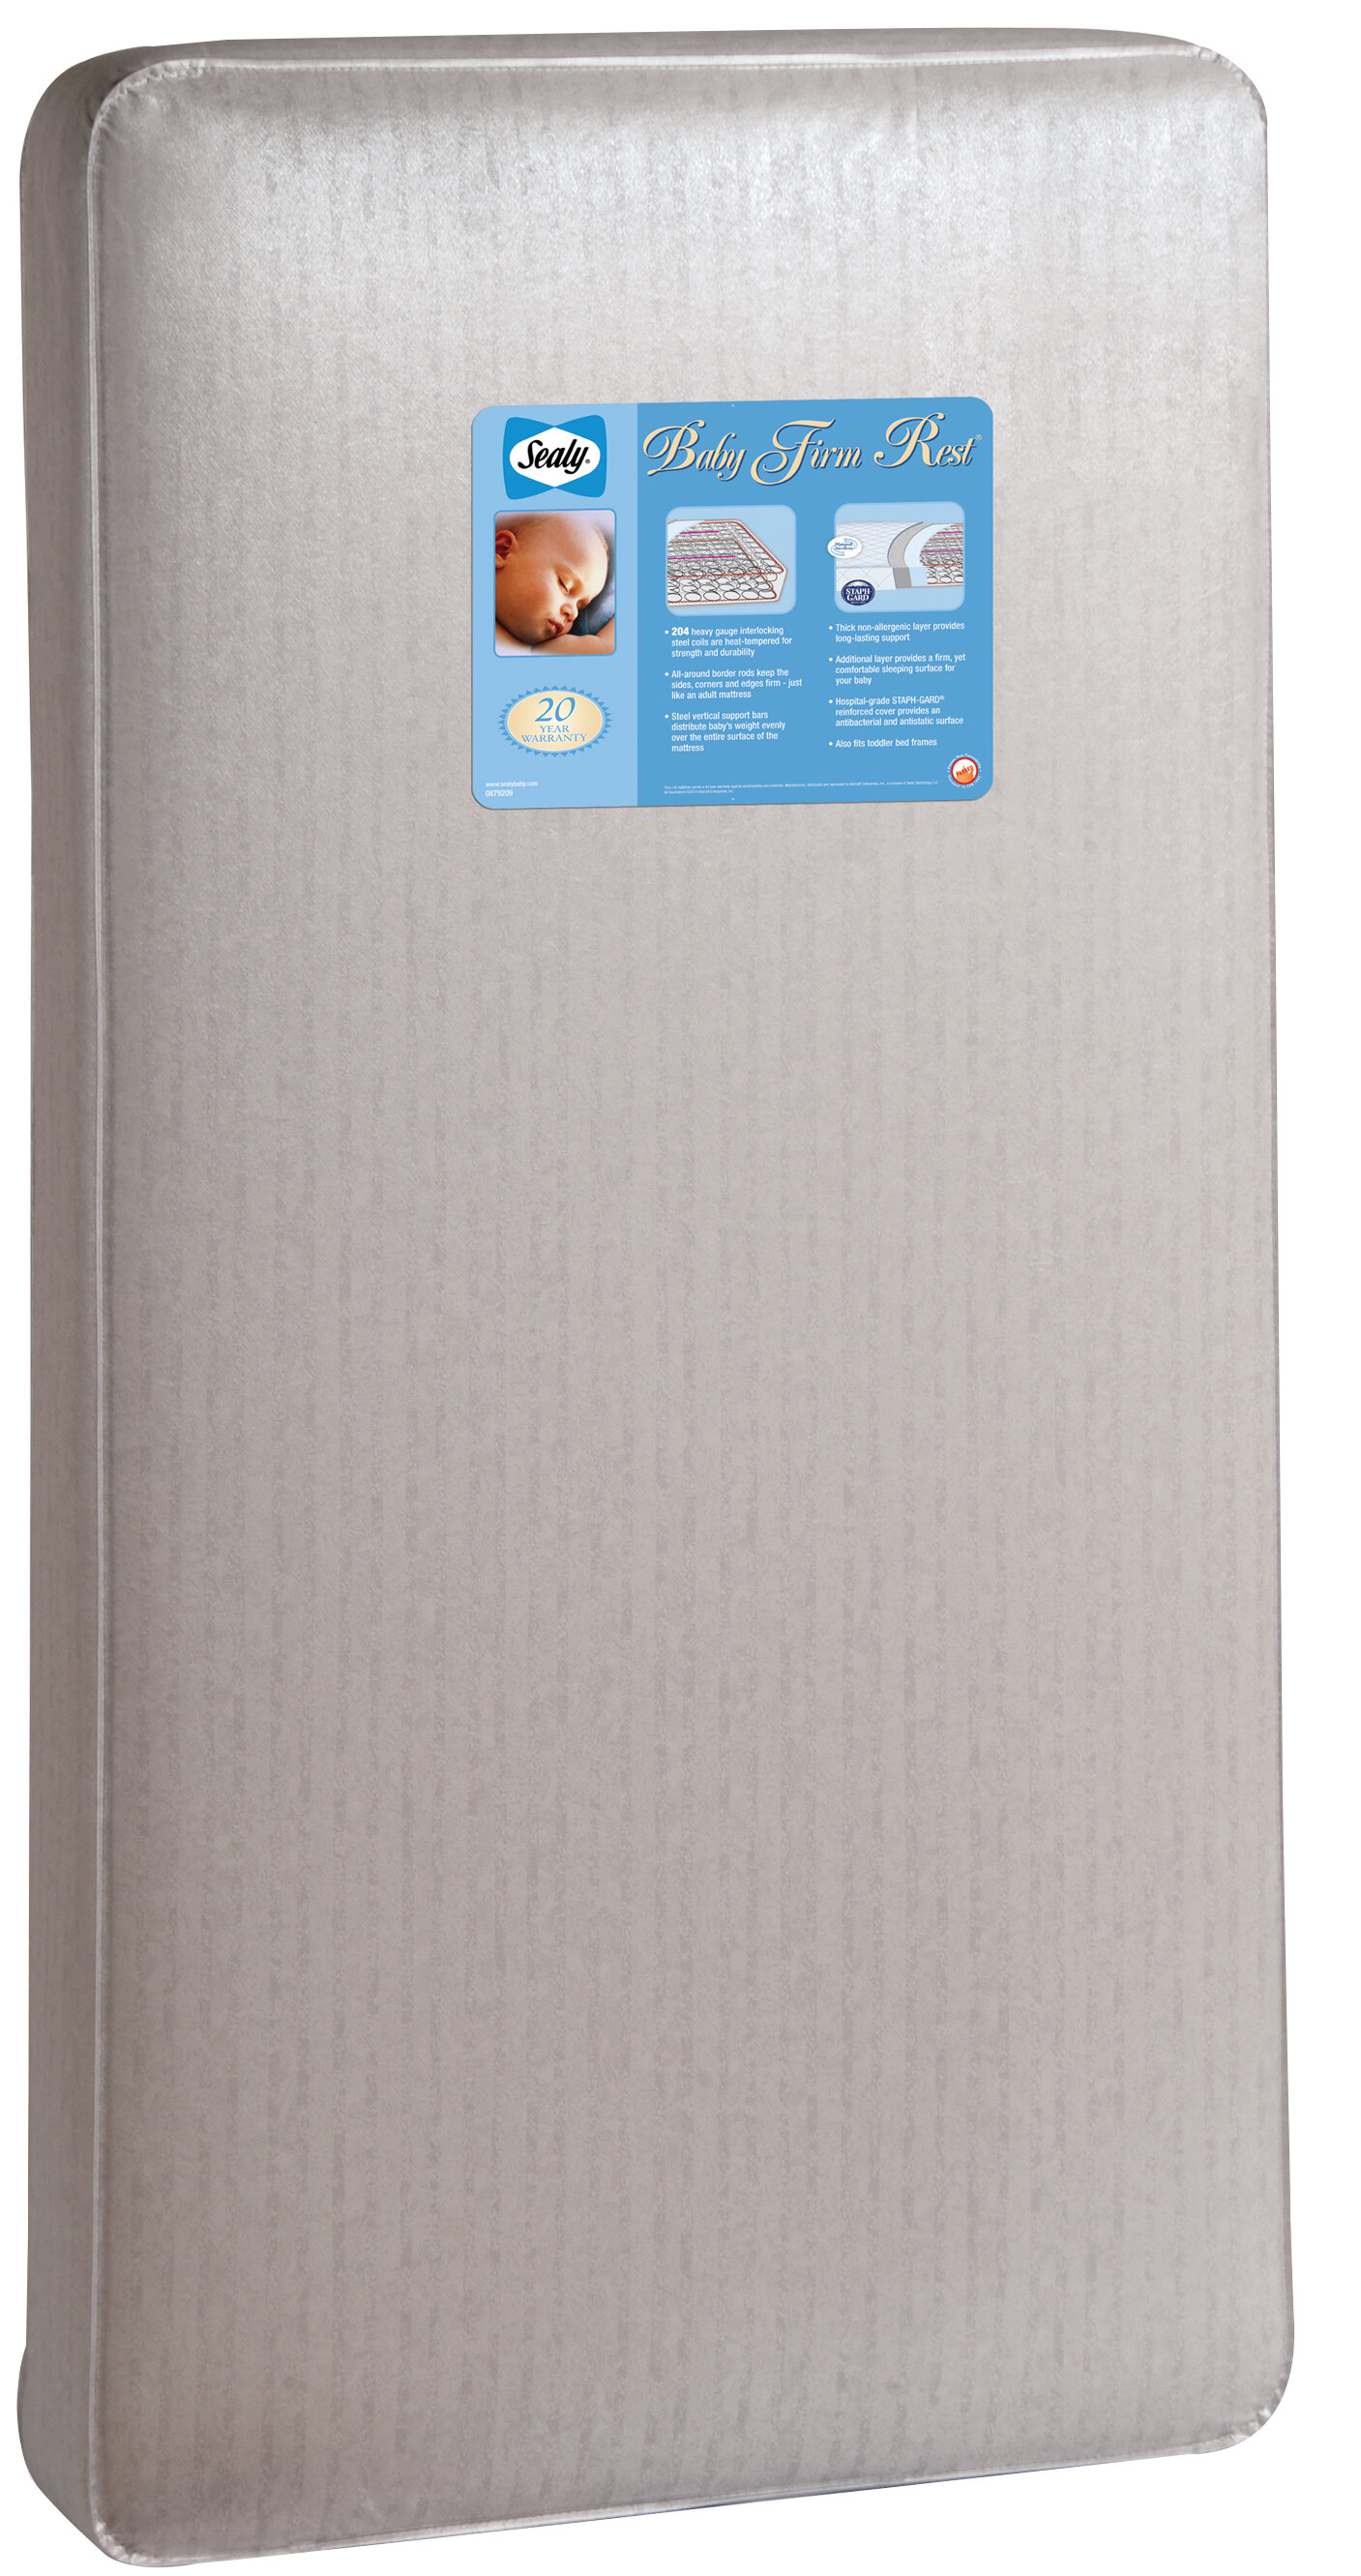 sealy baby firm rest 5 5 crib mattress reviews wayfair